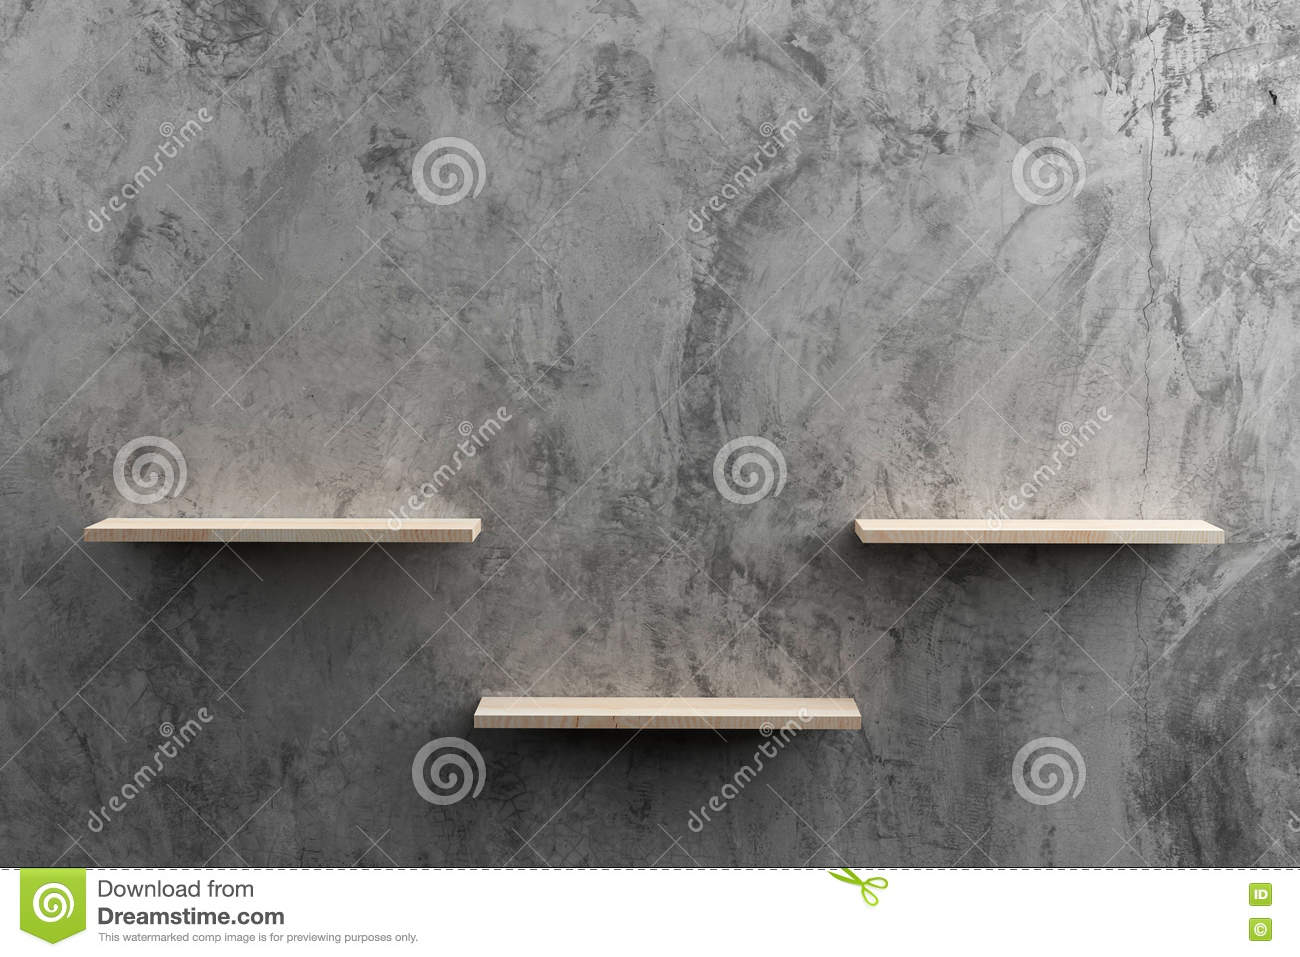 Wooden Shelves On Raw Cement Wall Stock Photo - Image: 73947385